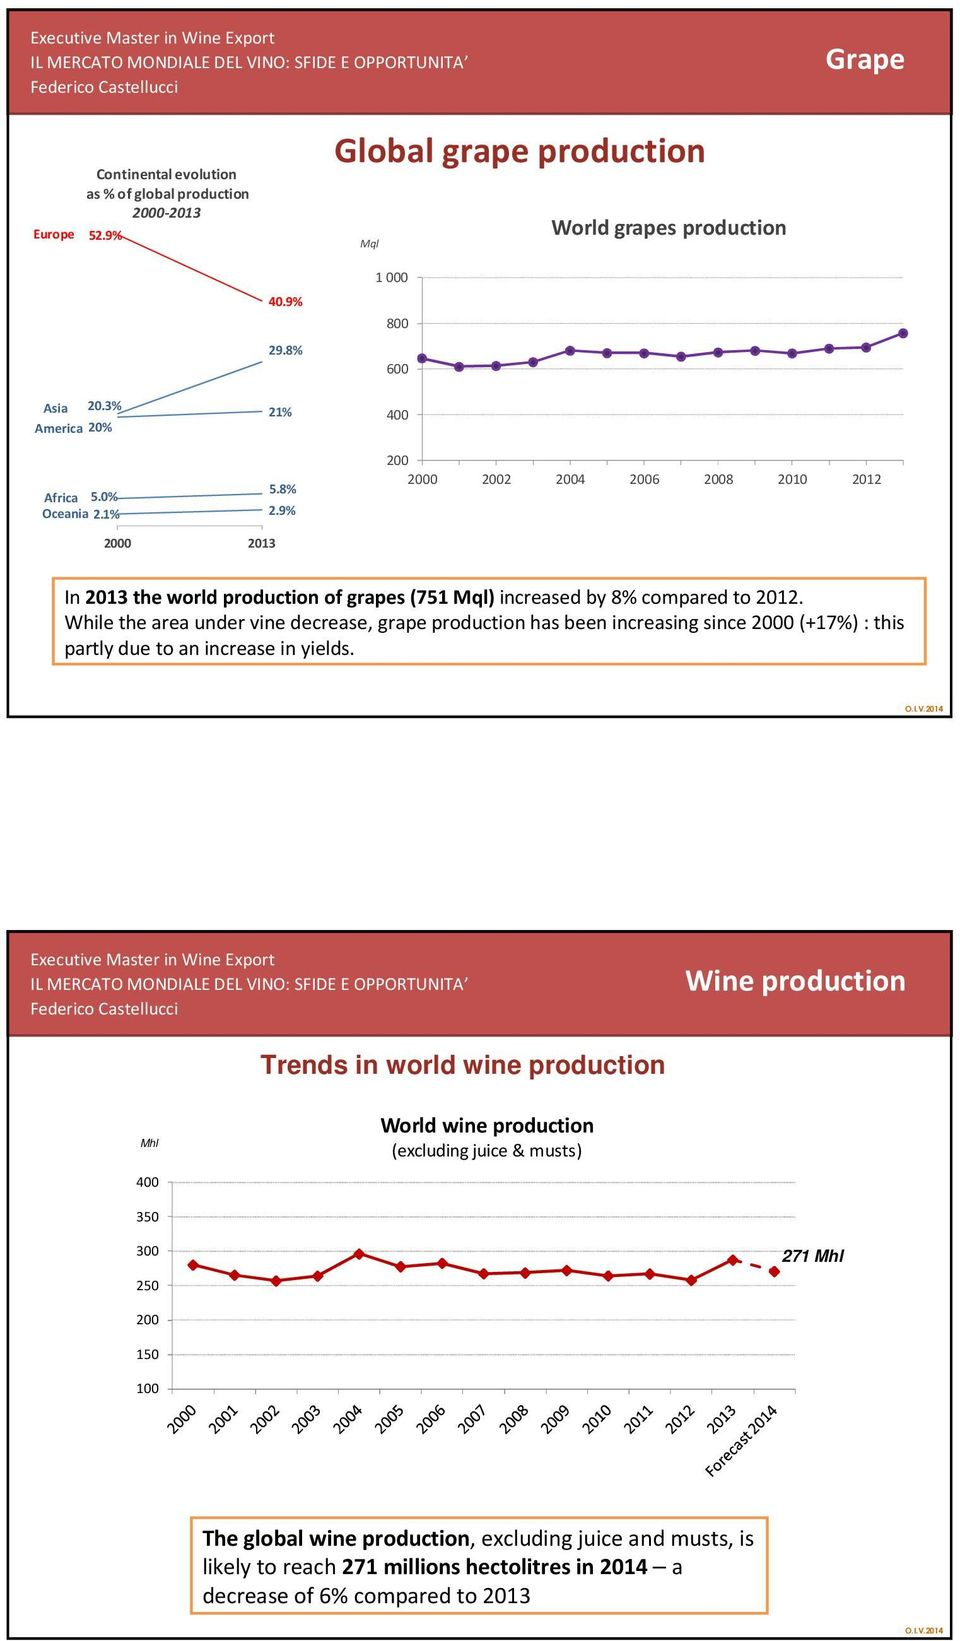 While the area under vine decrease, grape production has been increasing since (+17%) : this partly due to an increase in yields.